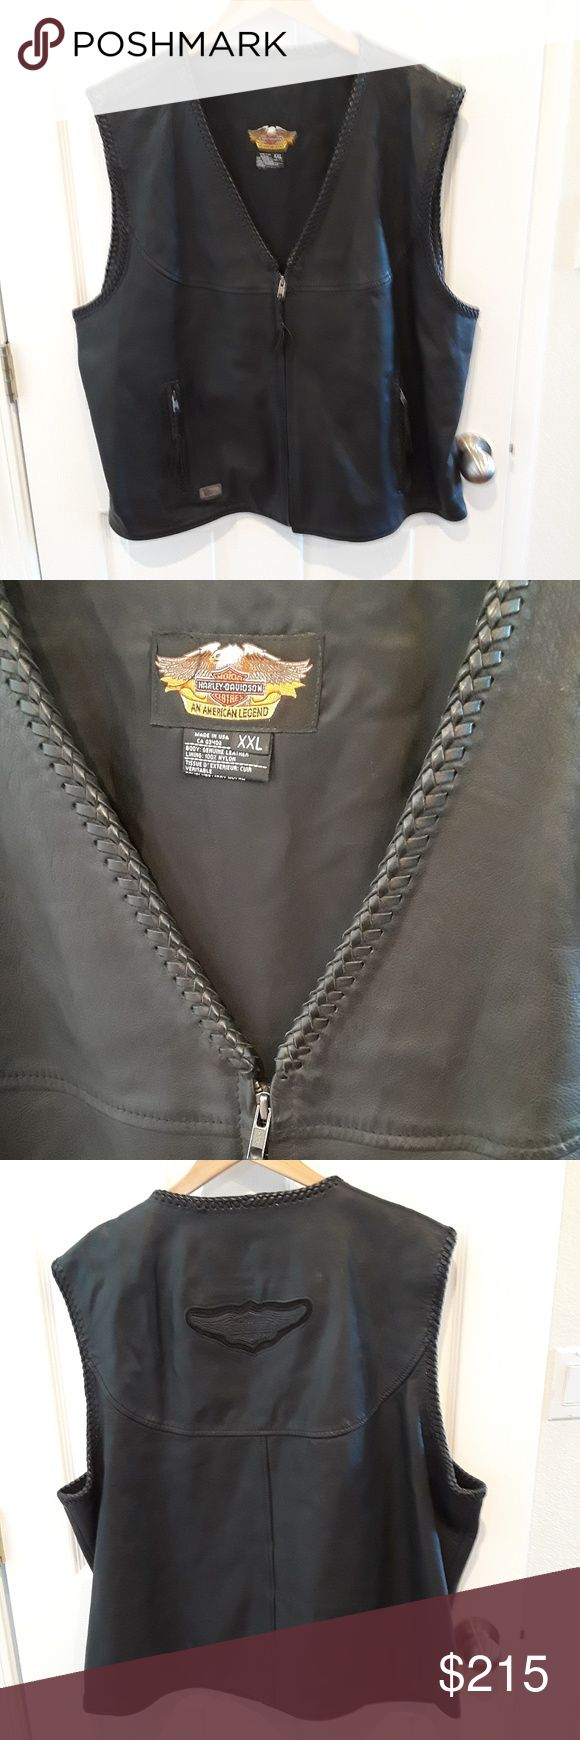 Harley-Davidson Willie G Leather Vest Beyond classic Harely-Davidson Wille G leather vest that zips up the front and has two zippered front pockets.  The logo is tooled on the back of the vest.  Excellent condition! Harley-Davidson Jackets & Coats Vests